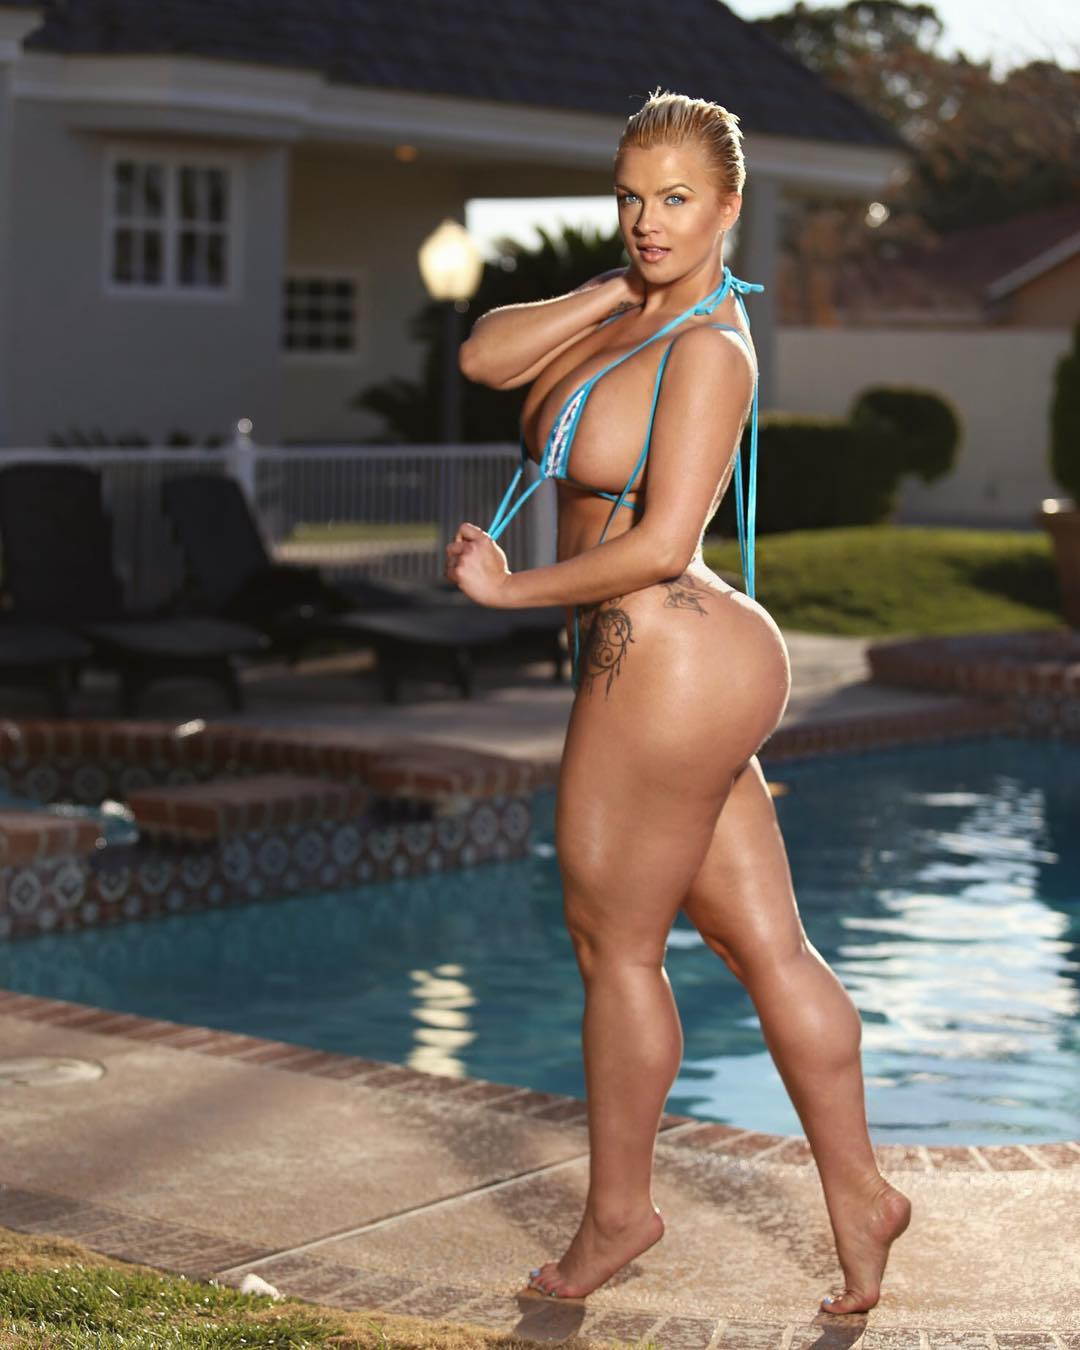 Read more about the article Booty floss @michibikinis by @topbitchphoto …